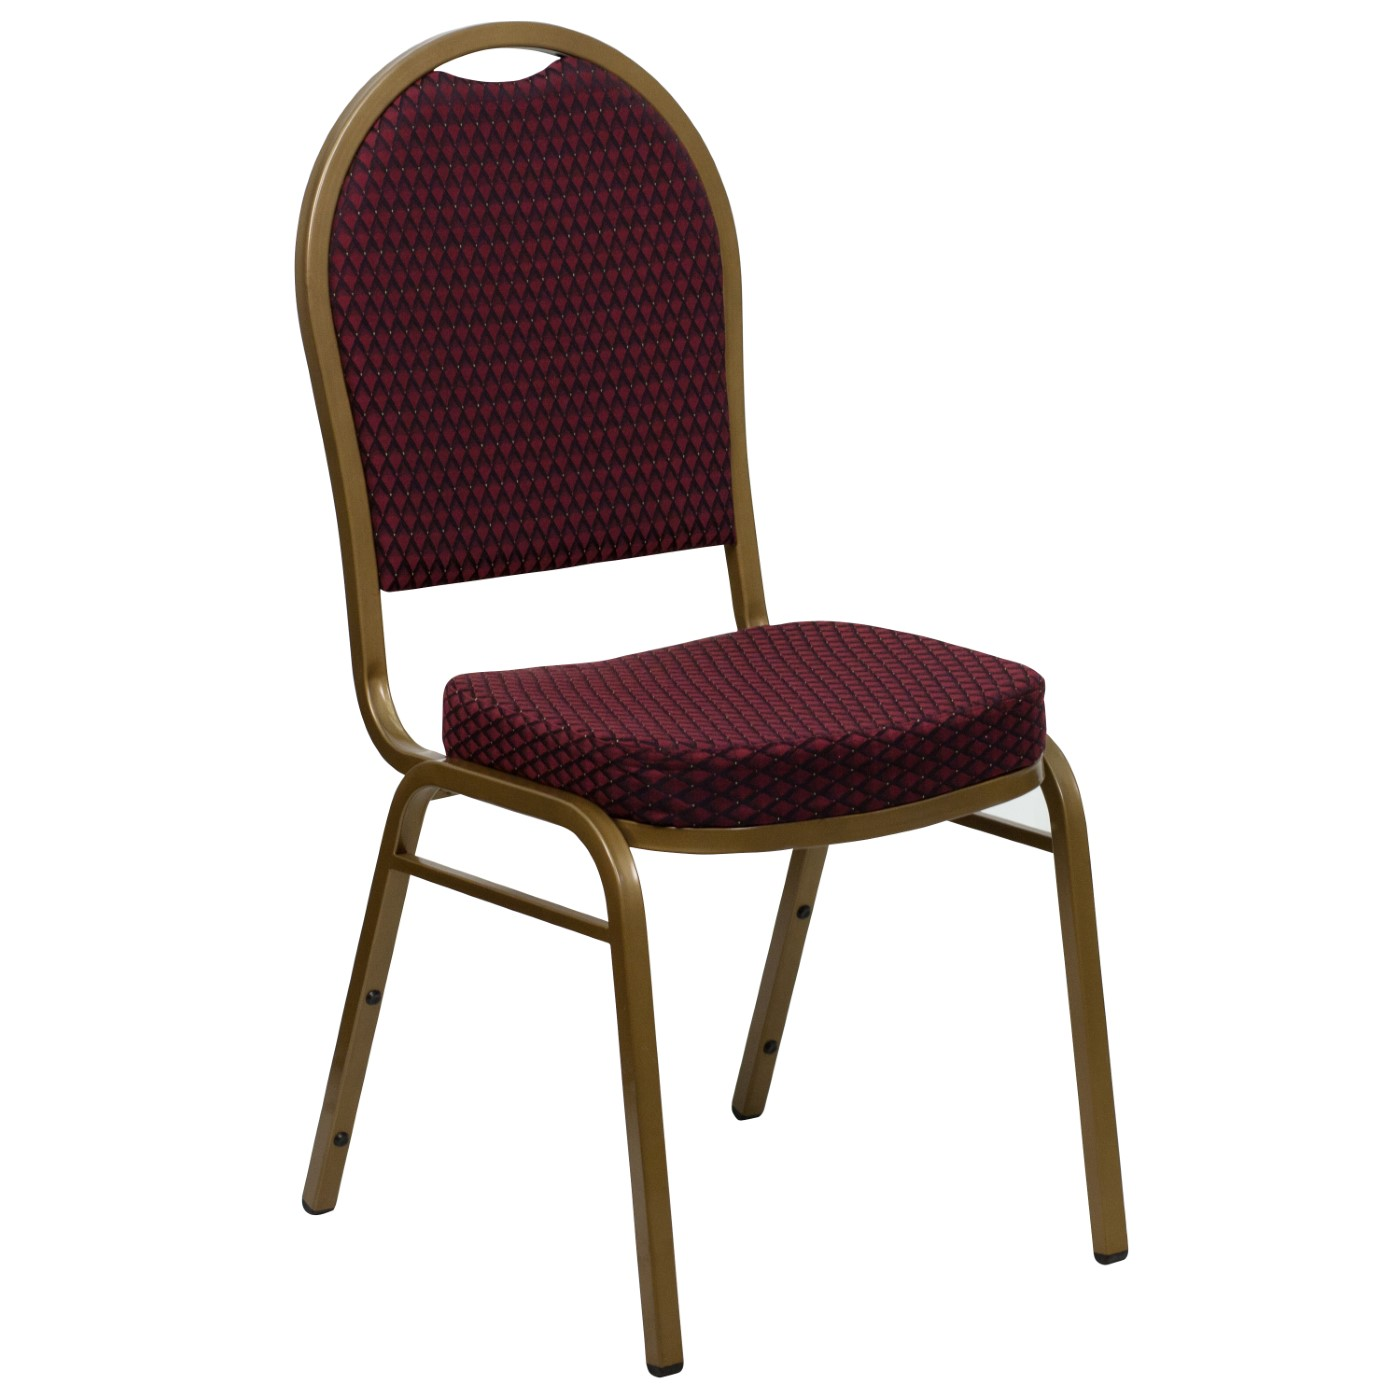 TOUGH ENOUGH Series Dome Back Stacking Banquet Chair in Burgundy Patterned Fabric - Gold Frame